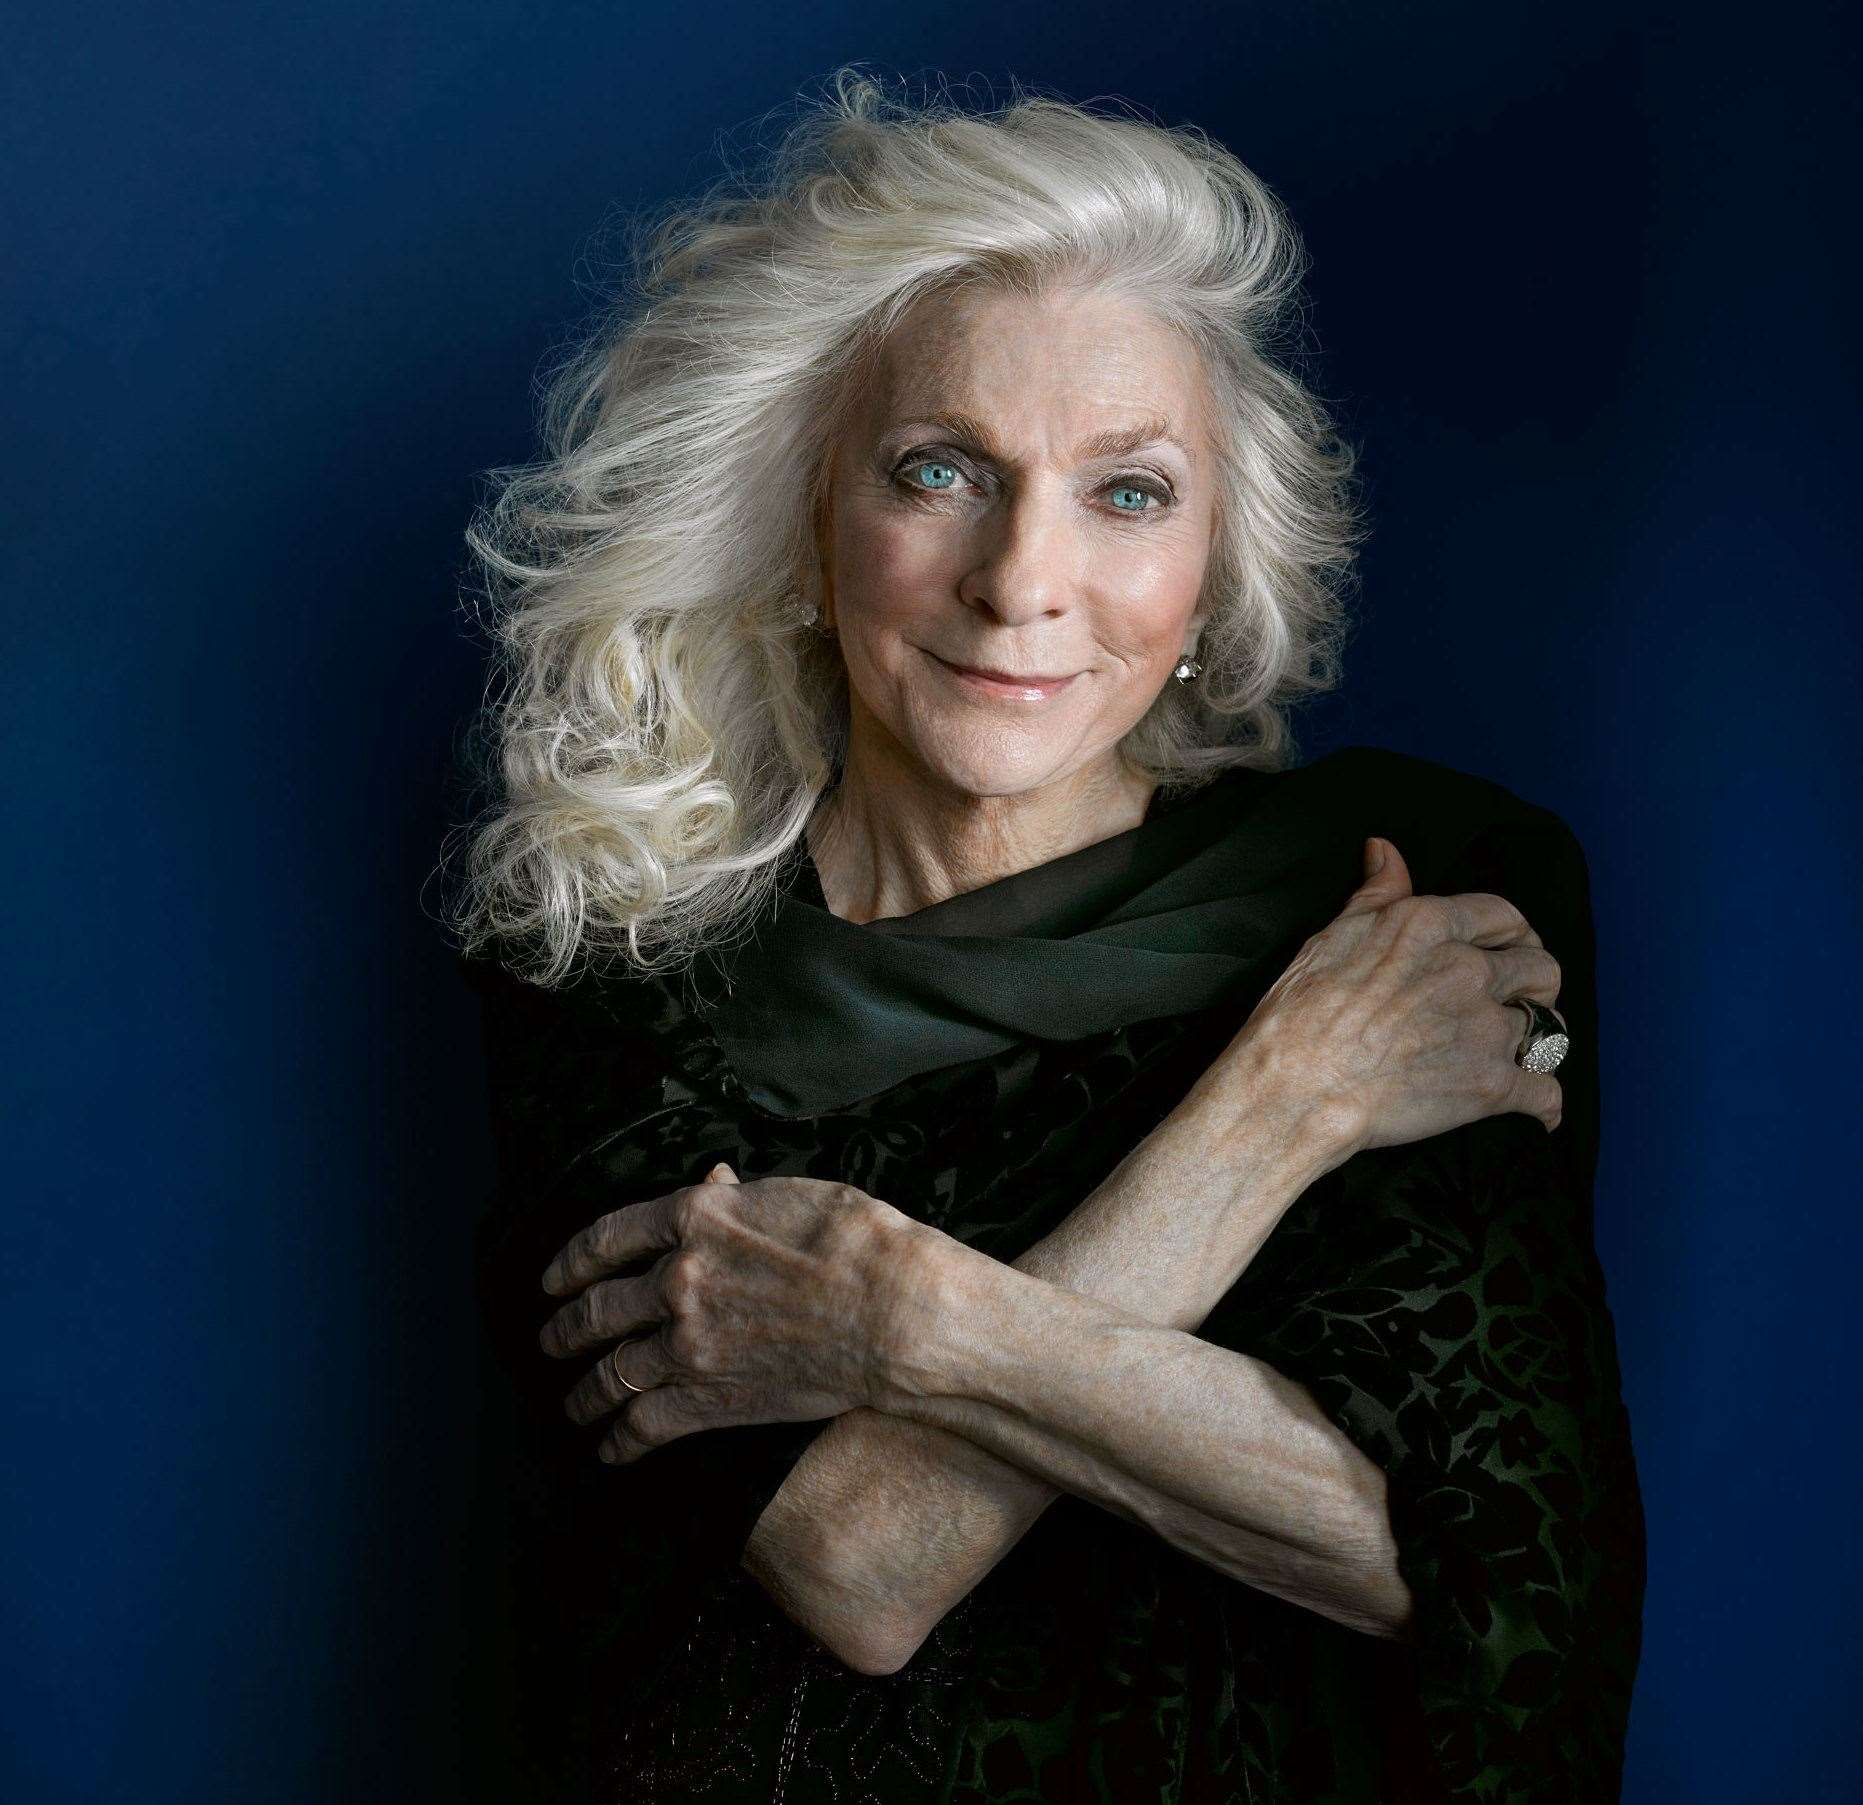 American singer Judy Collins